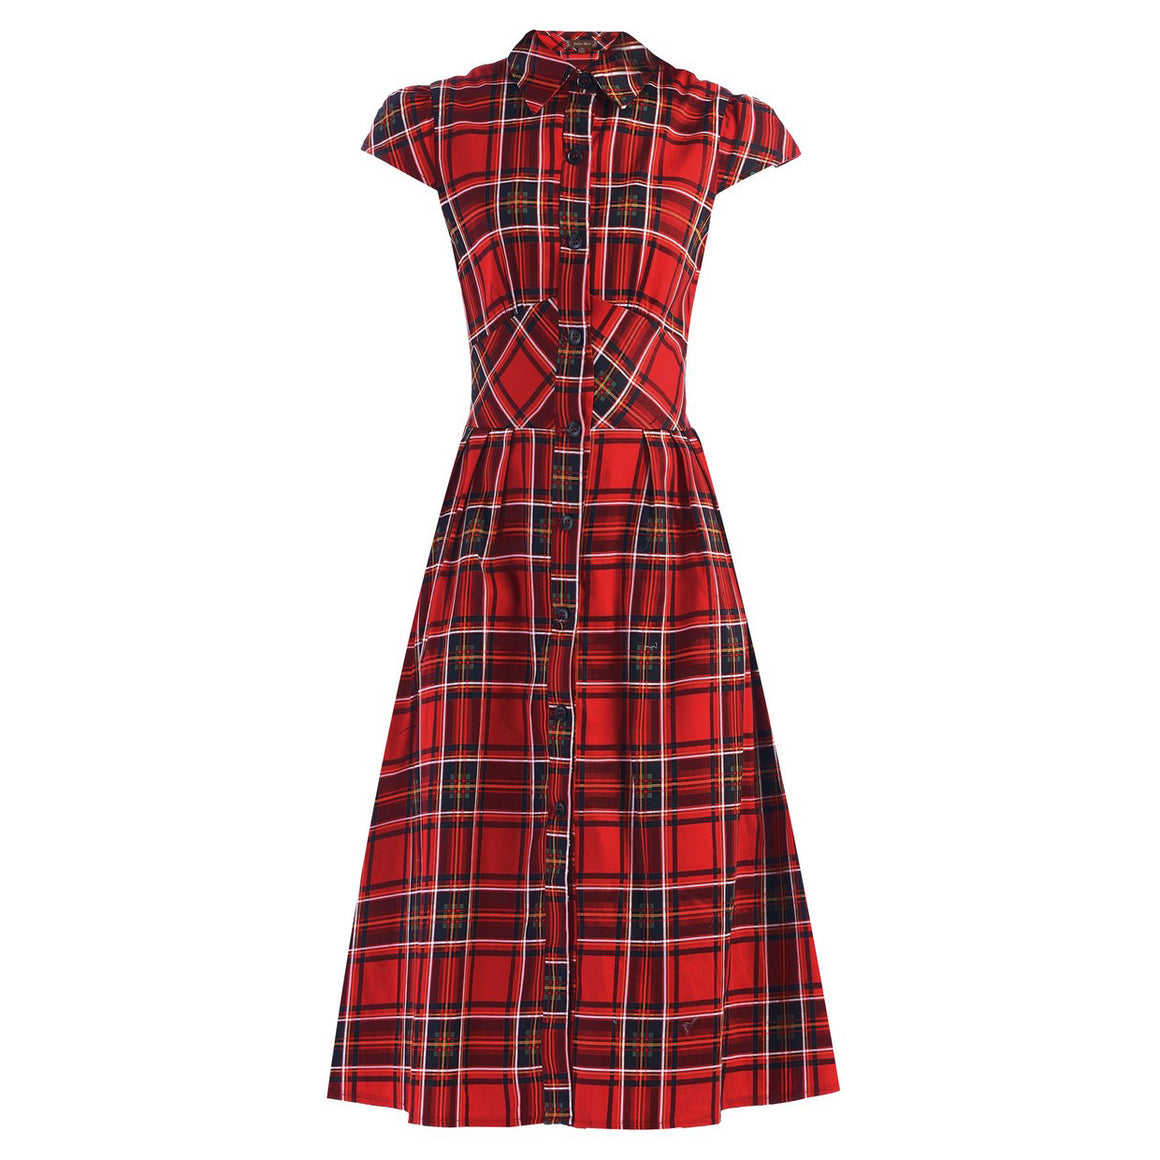 Red Tartan Check Retro Shirt Top 50s Burns Swing Tea Dress